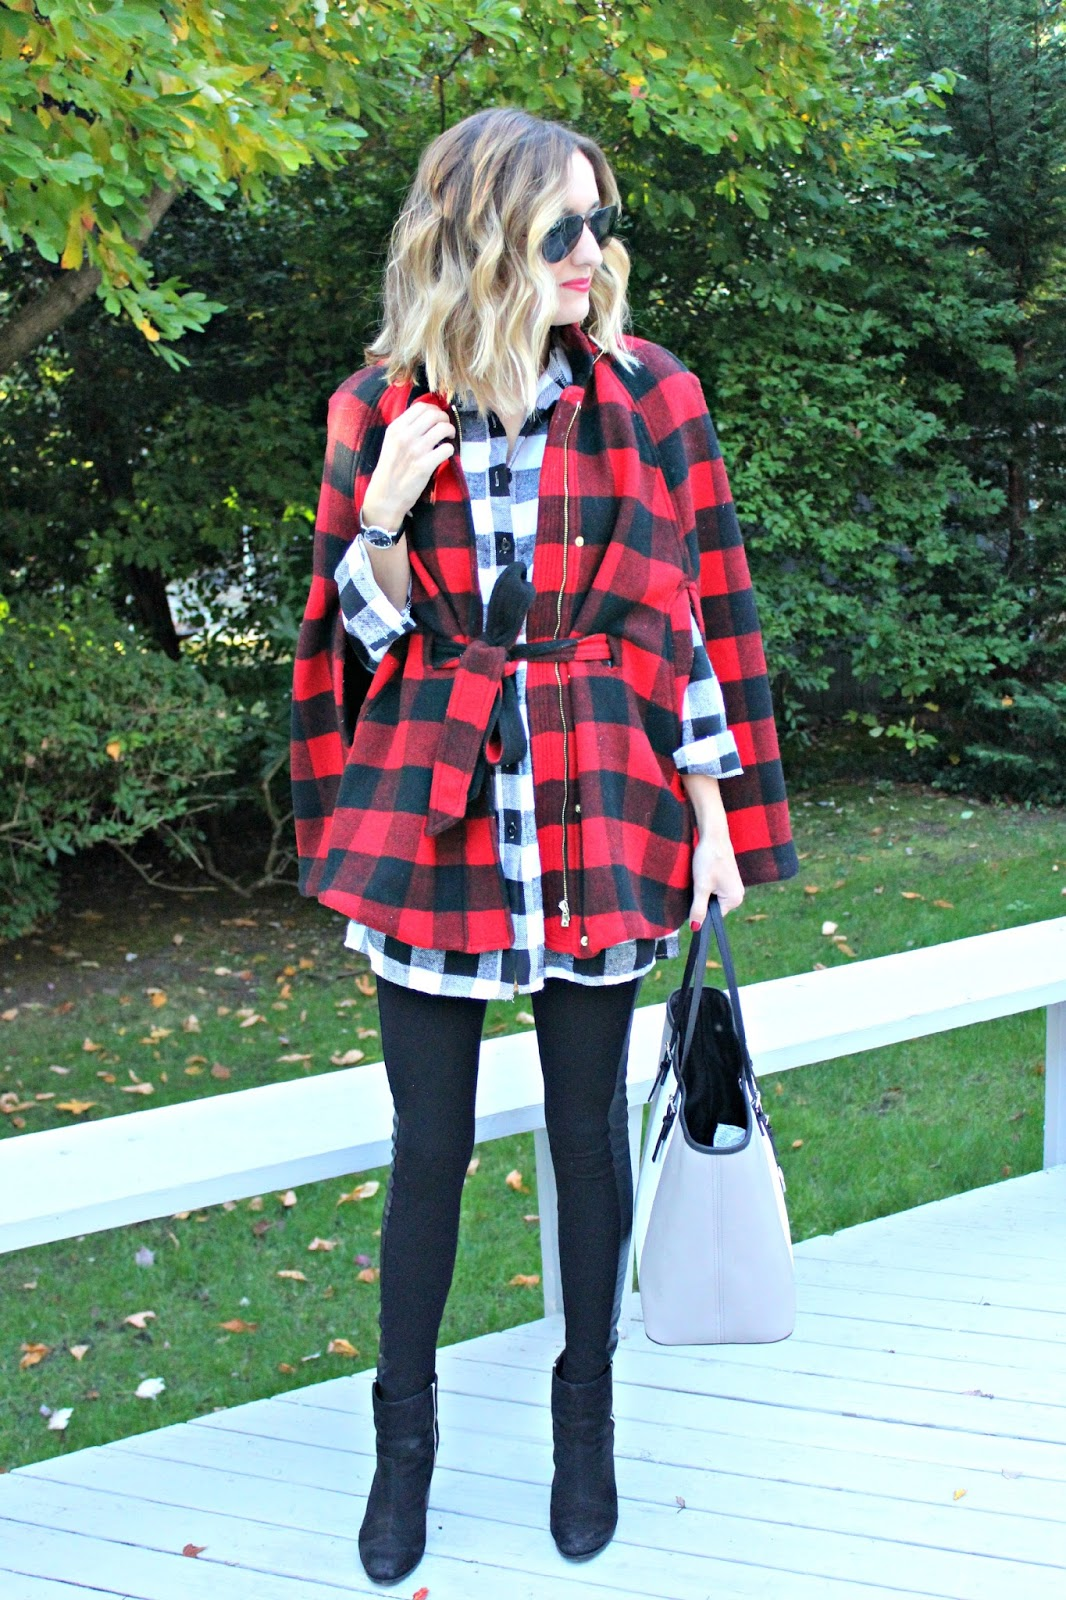 mixing buffalo plaid prints